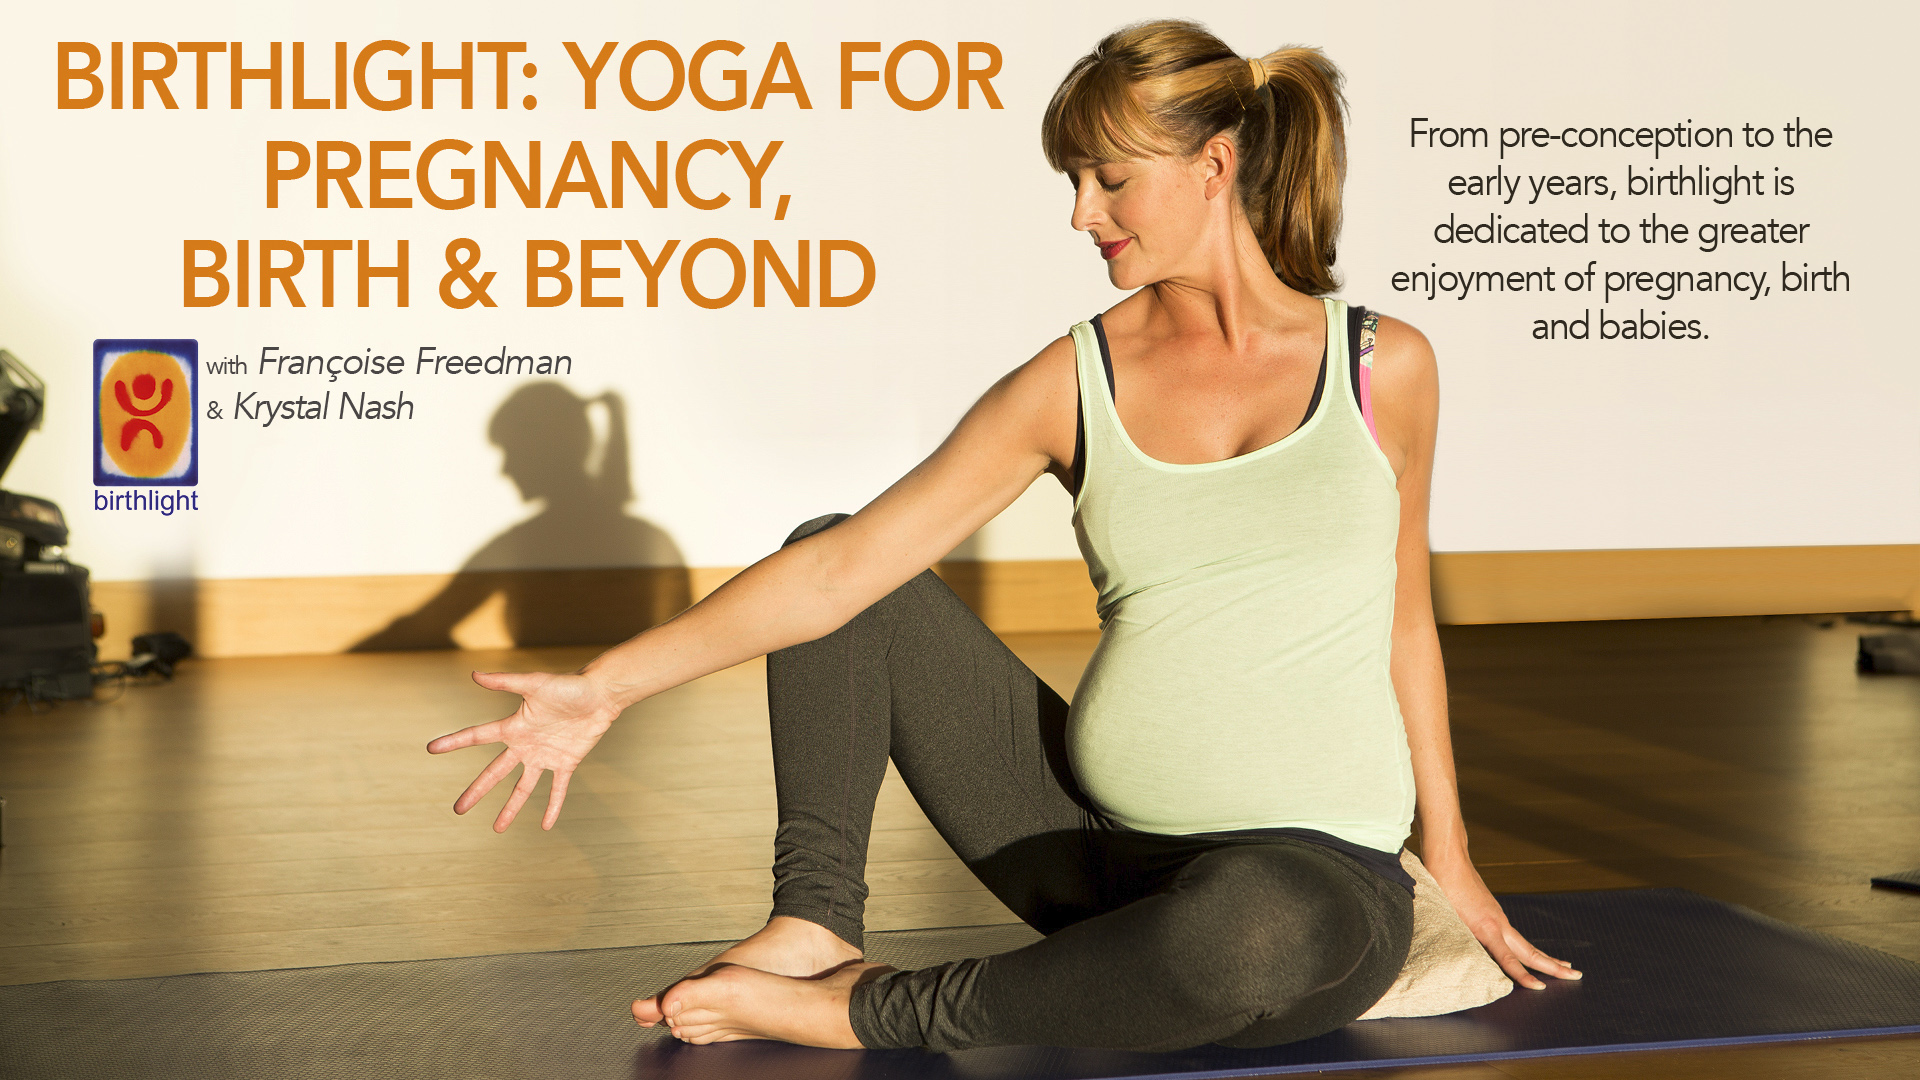 Birthlight - Yoga for Pregnancy, Birth & Beyond